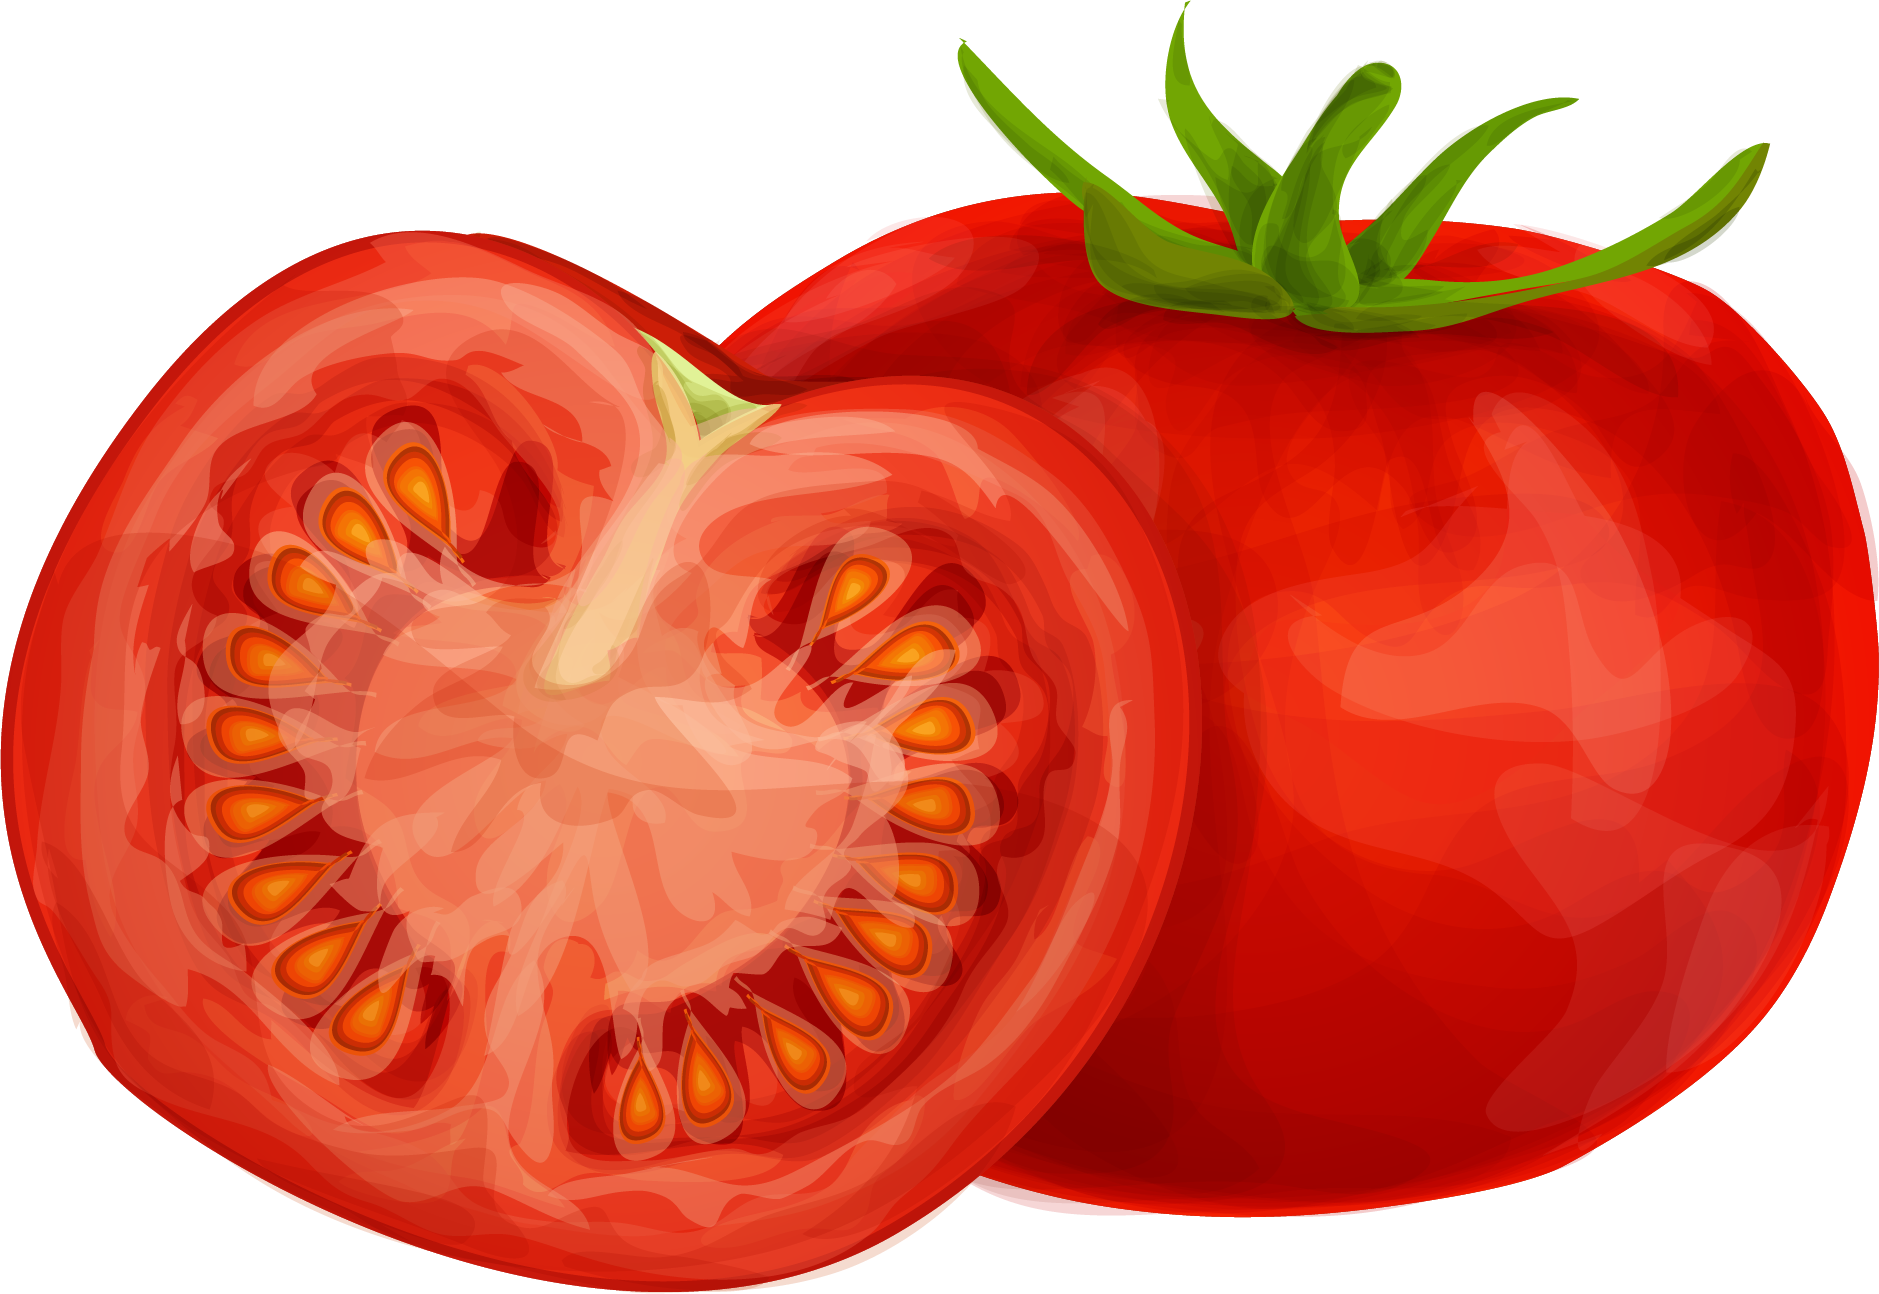 Tomatoes clipart two. Tomato png images transparent